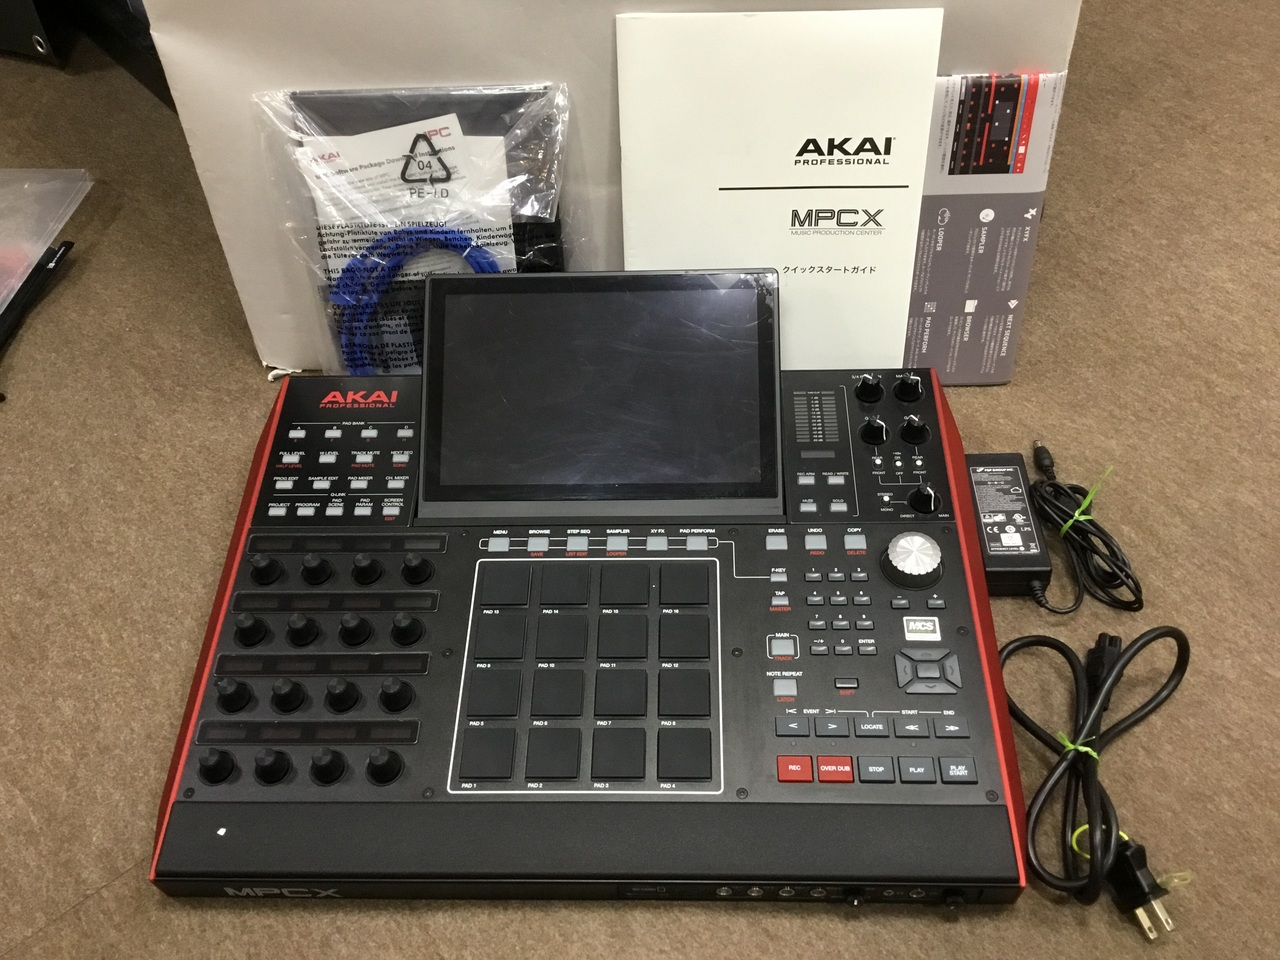 AKAI MPC X over-the-counter exhibits Sale